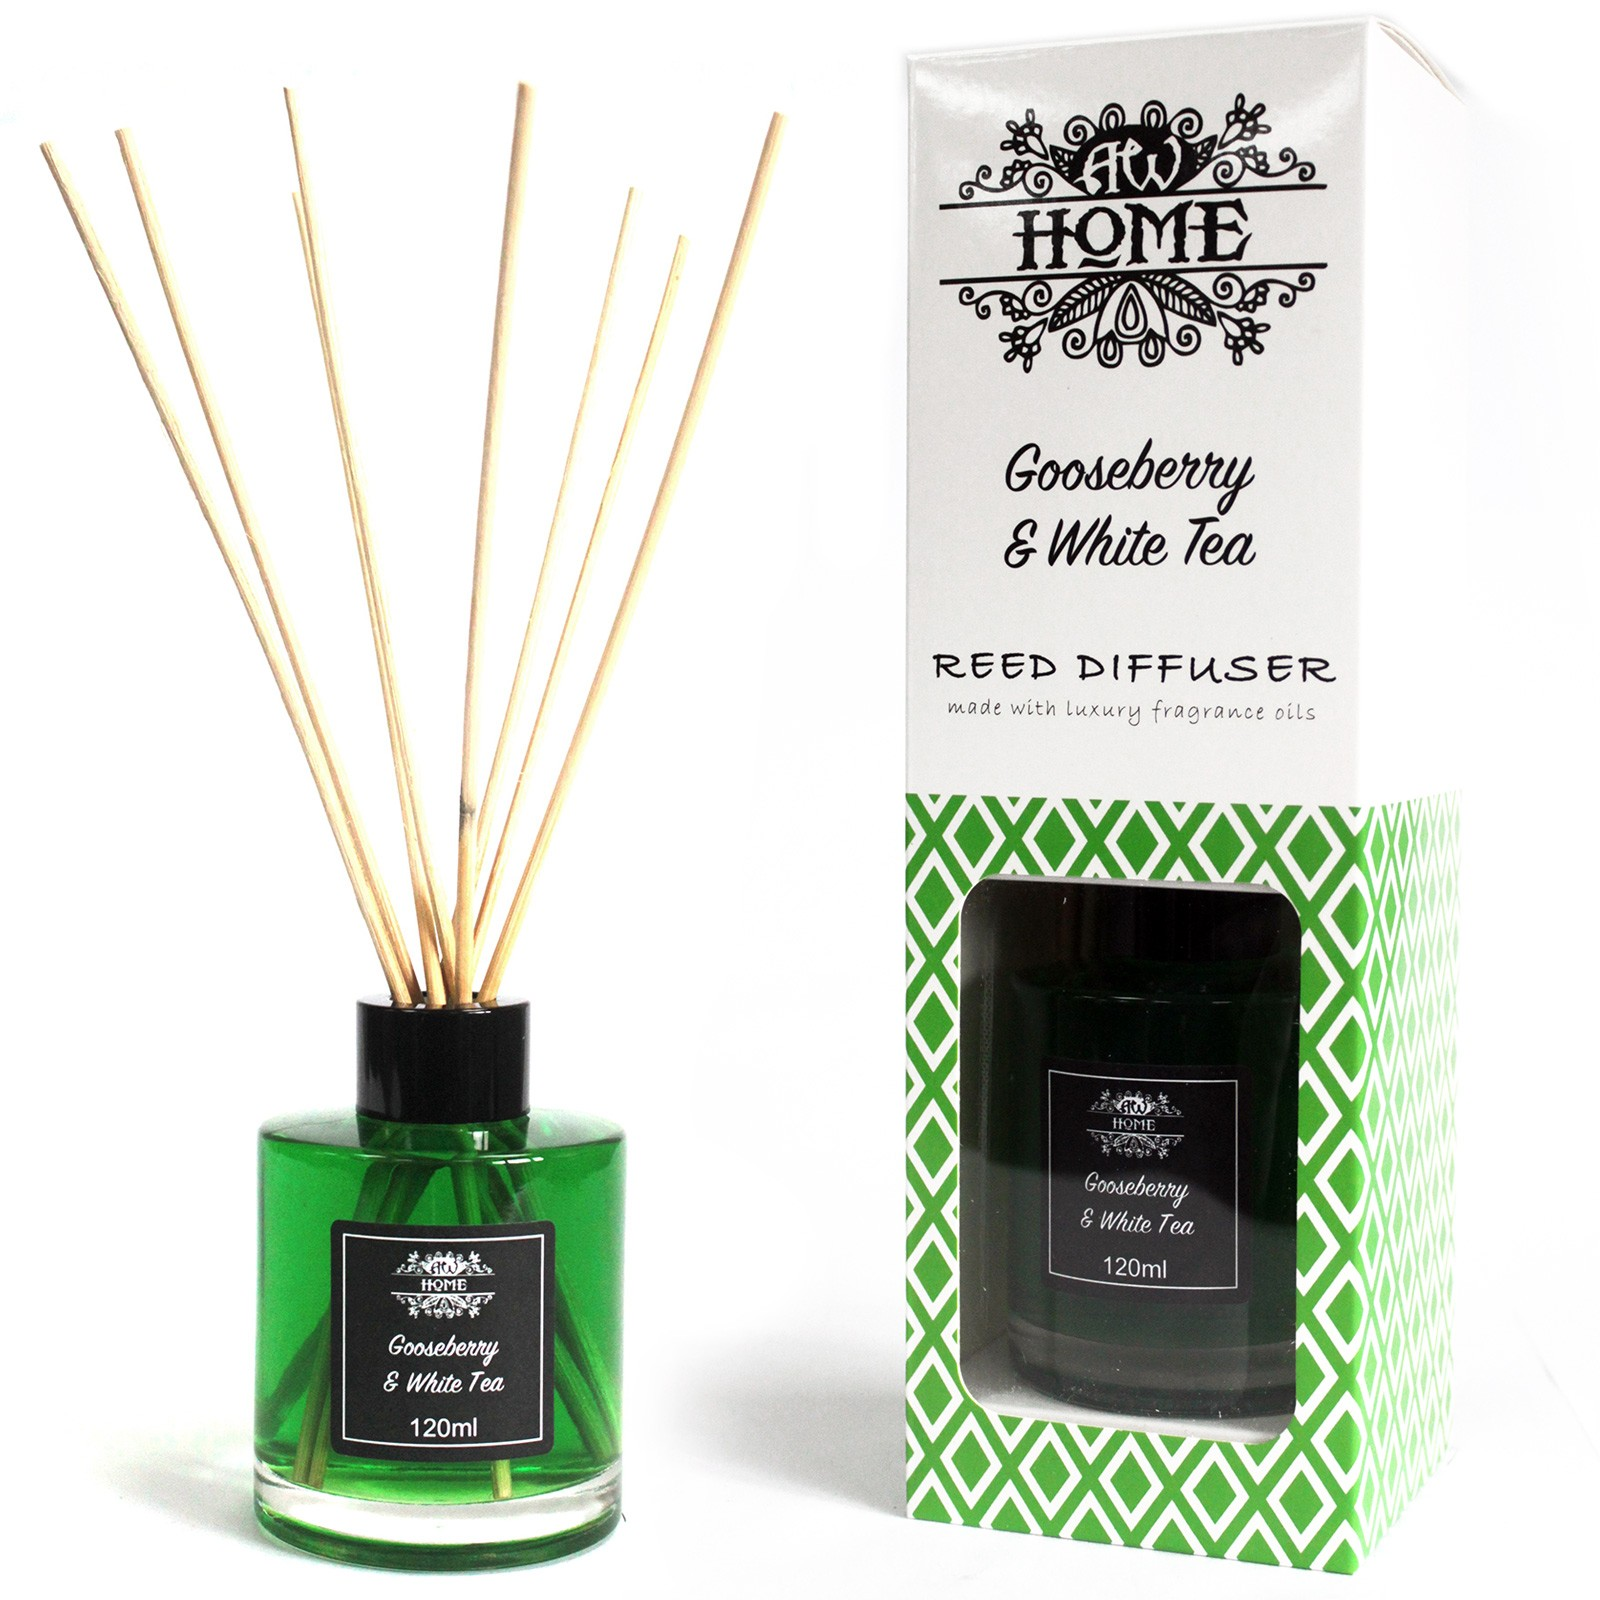 120ml Reed Diffuser Gooseberry and White Tea